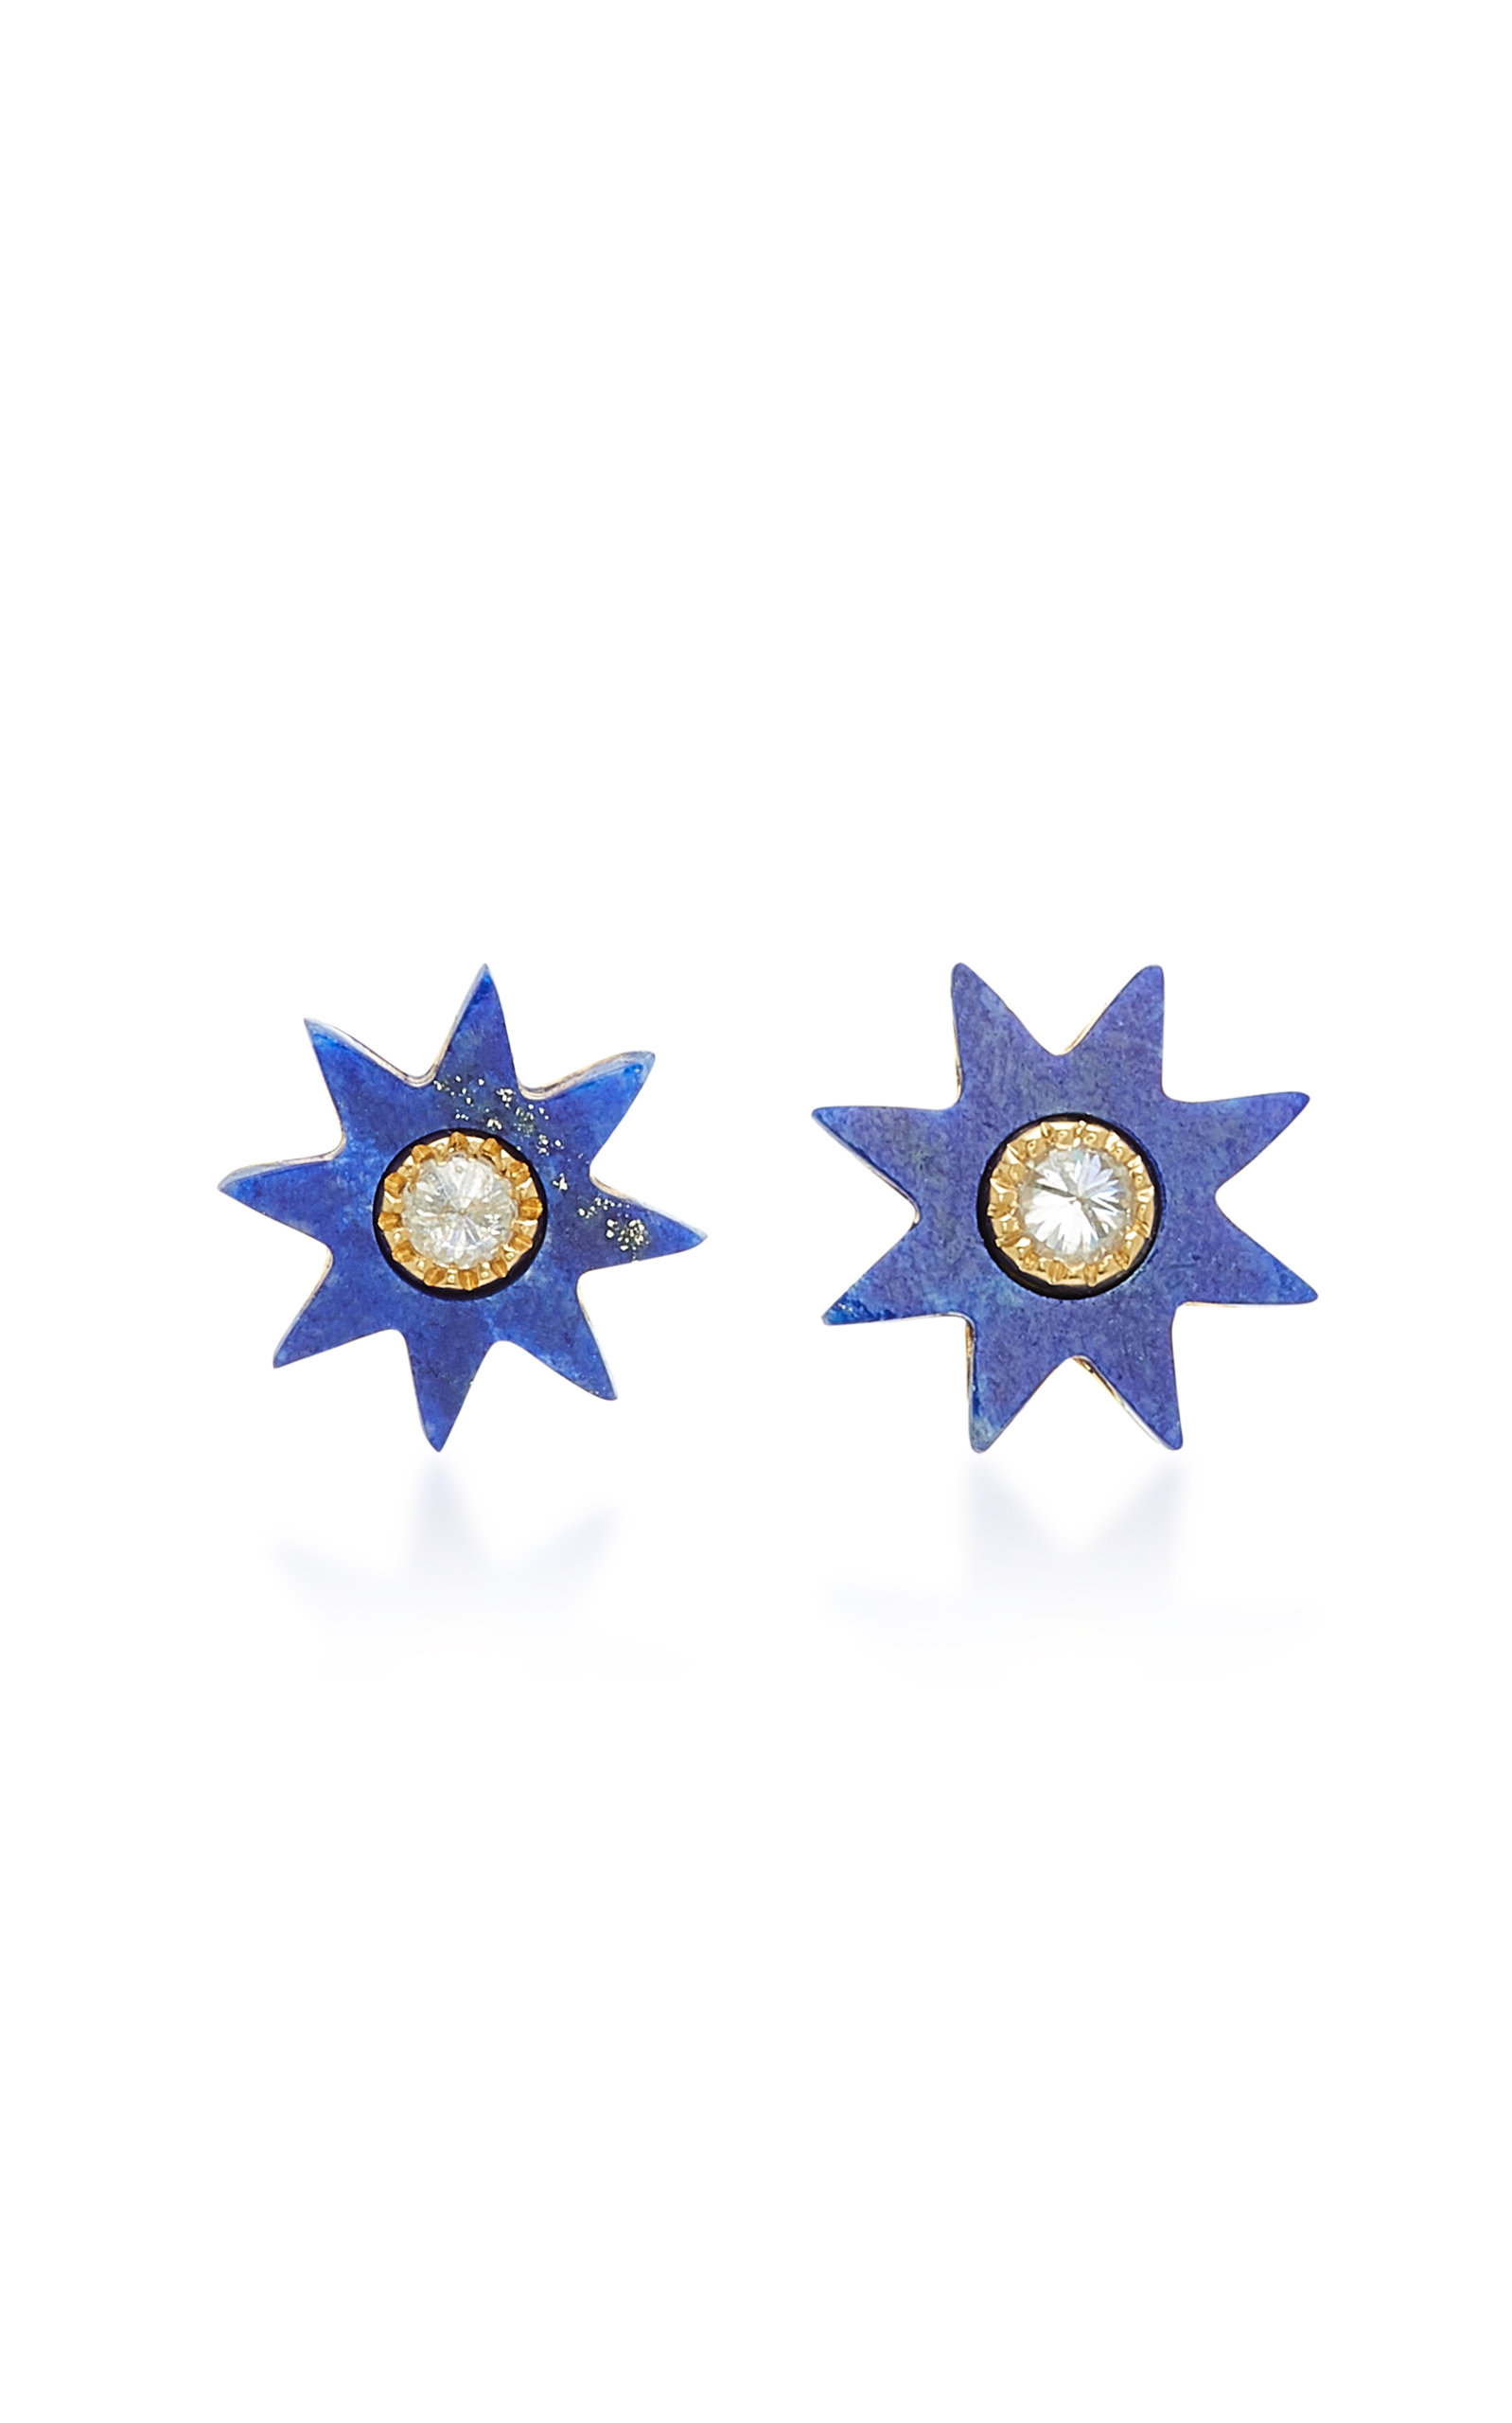 COLETTE JEWELRY STAR 18K GOLD LAPIS EARRINGS